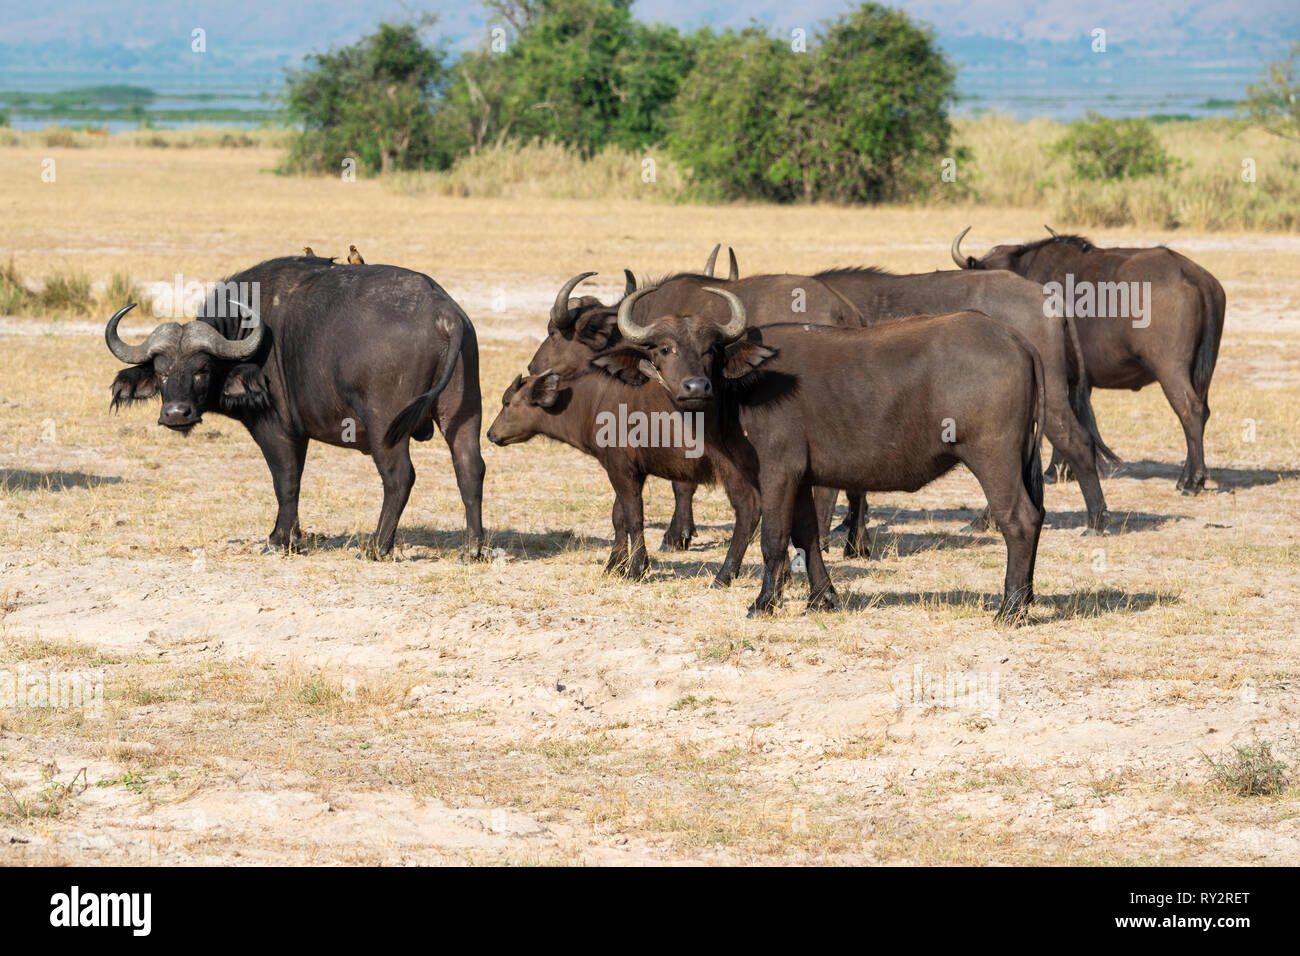 Group of African buffalo (syncerus caffer) on the move in Murchison Falls National Park, Northern Uganda, East Africa - Stock Image